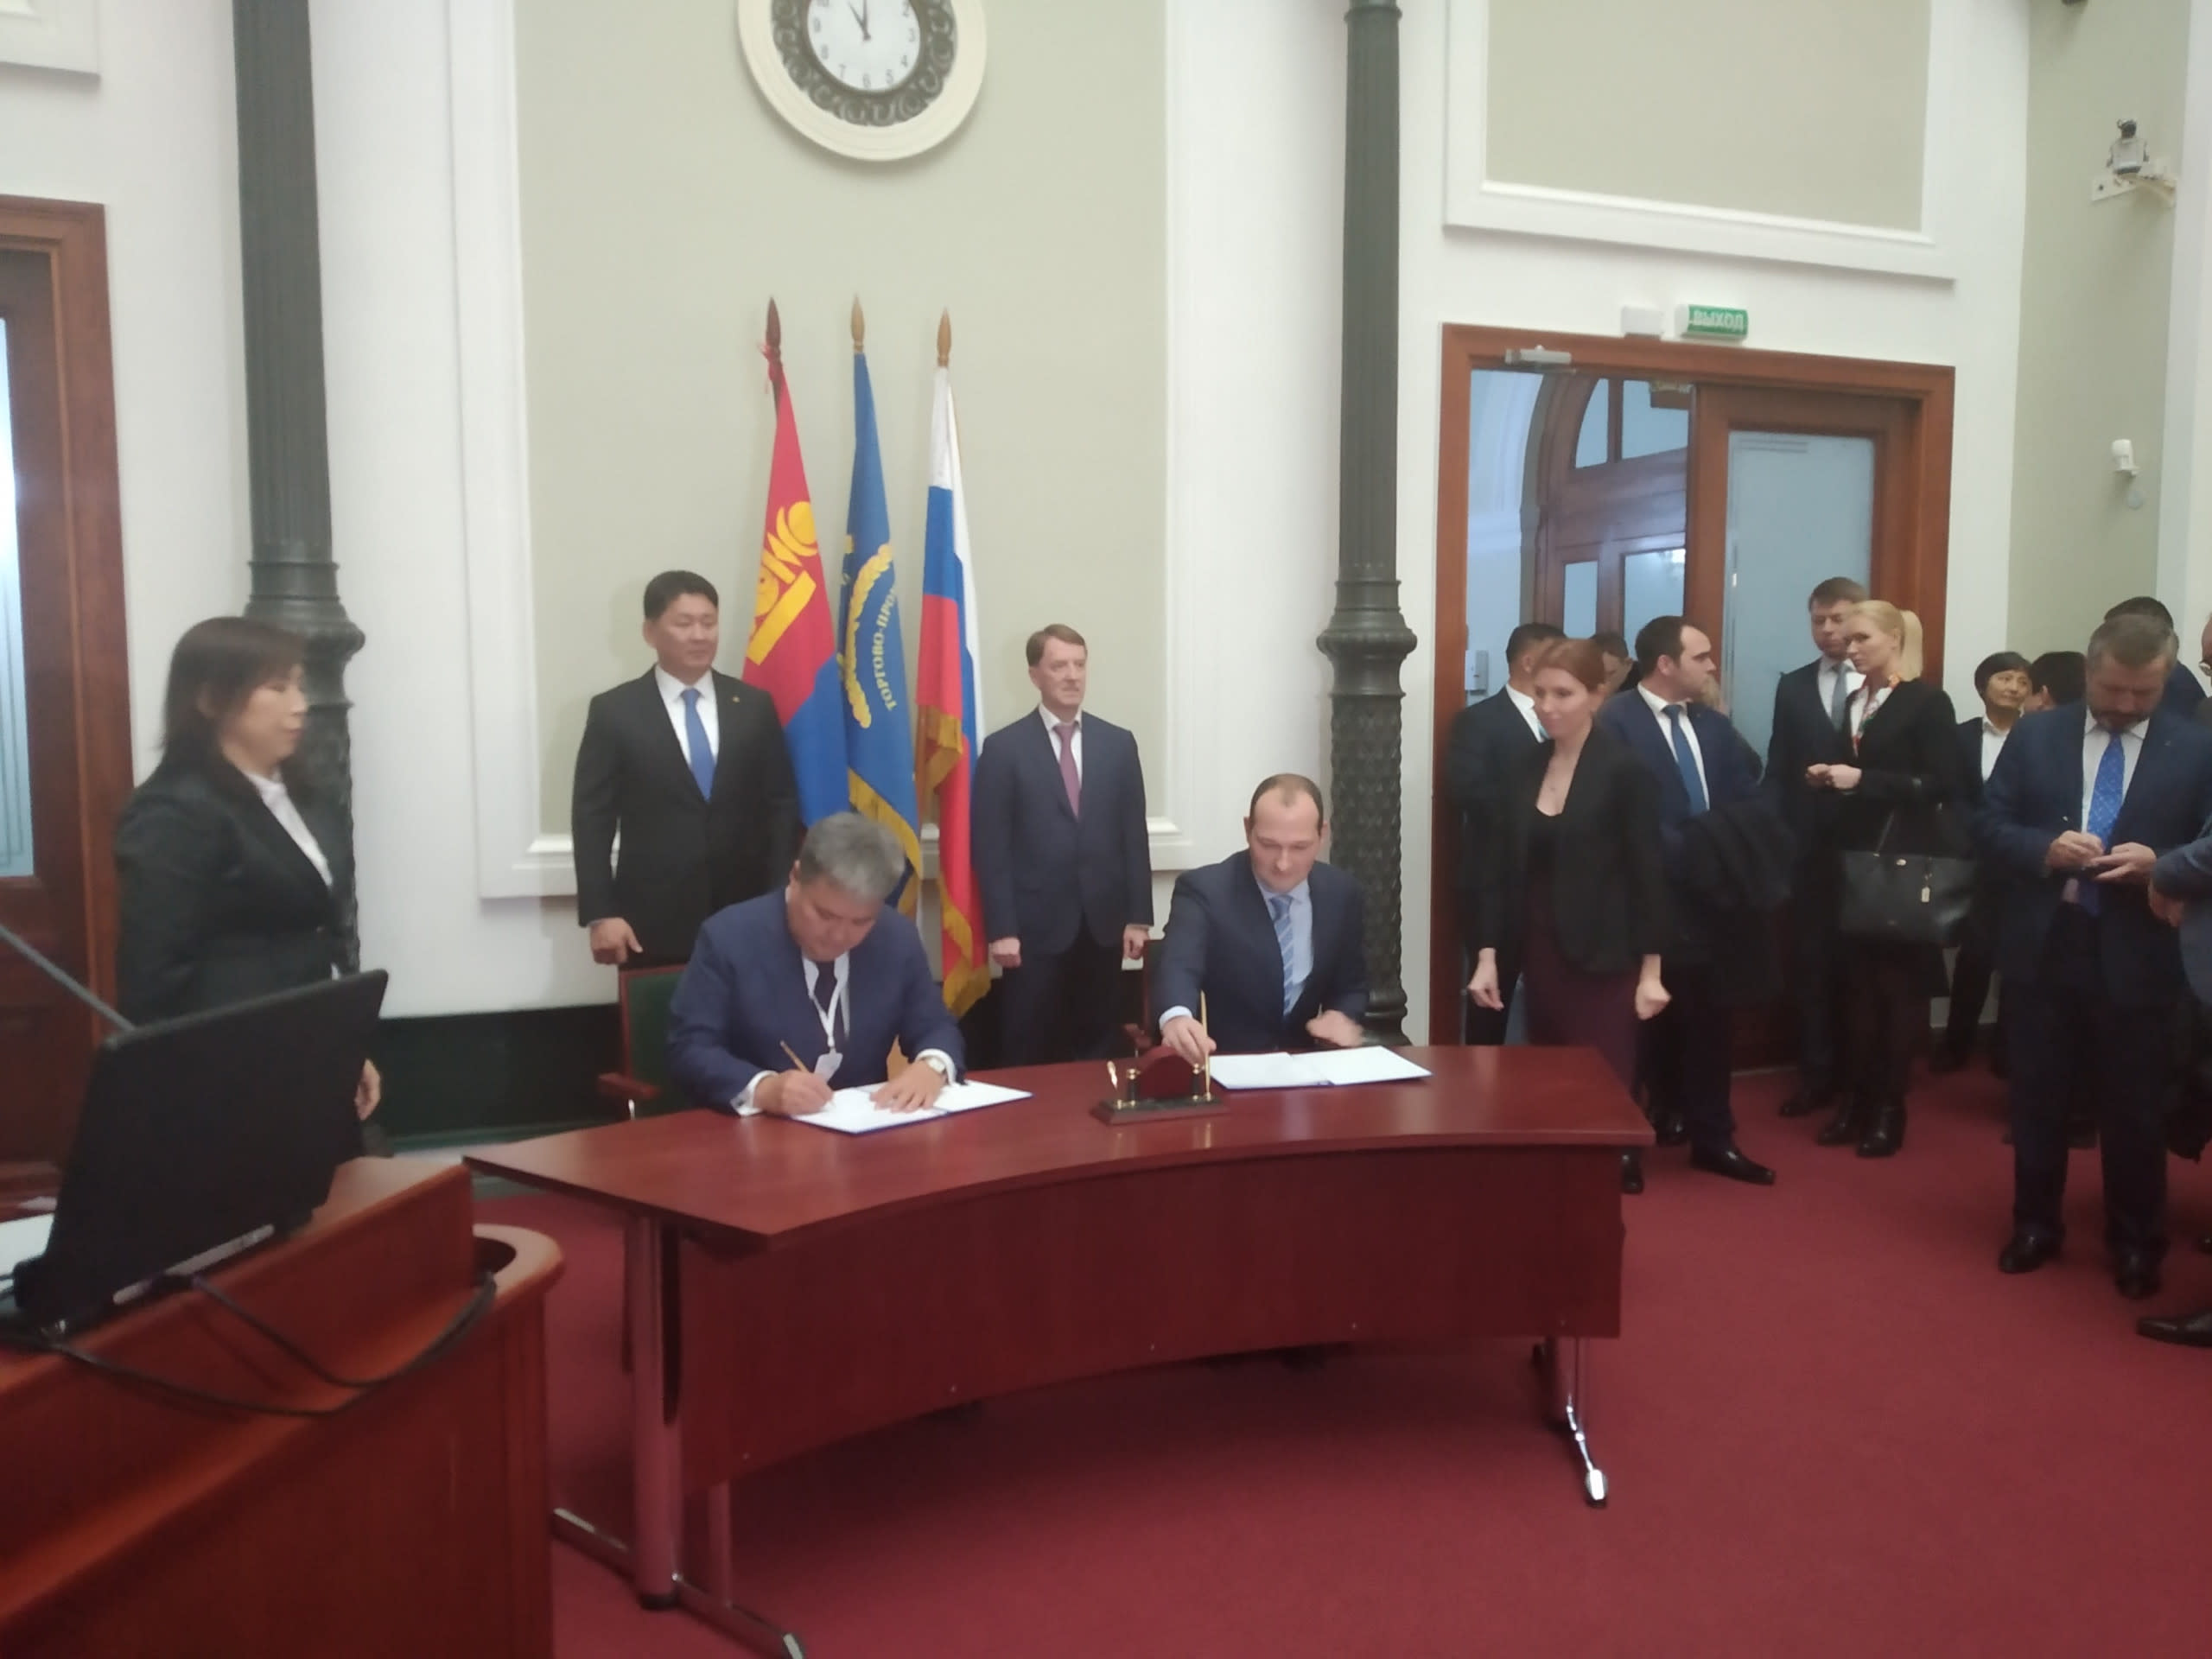 IIB develops partnerships in Mongolia: Bank representatives signed an important bilateral agreement on the sidelines of the Russian-Mongolian Business Forum